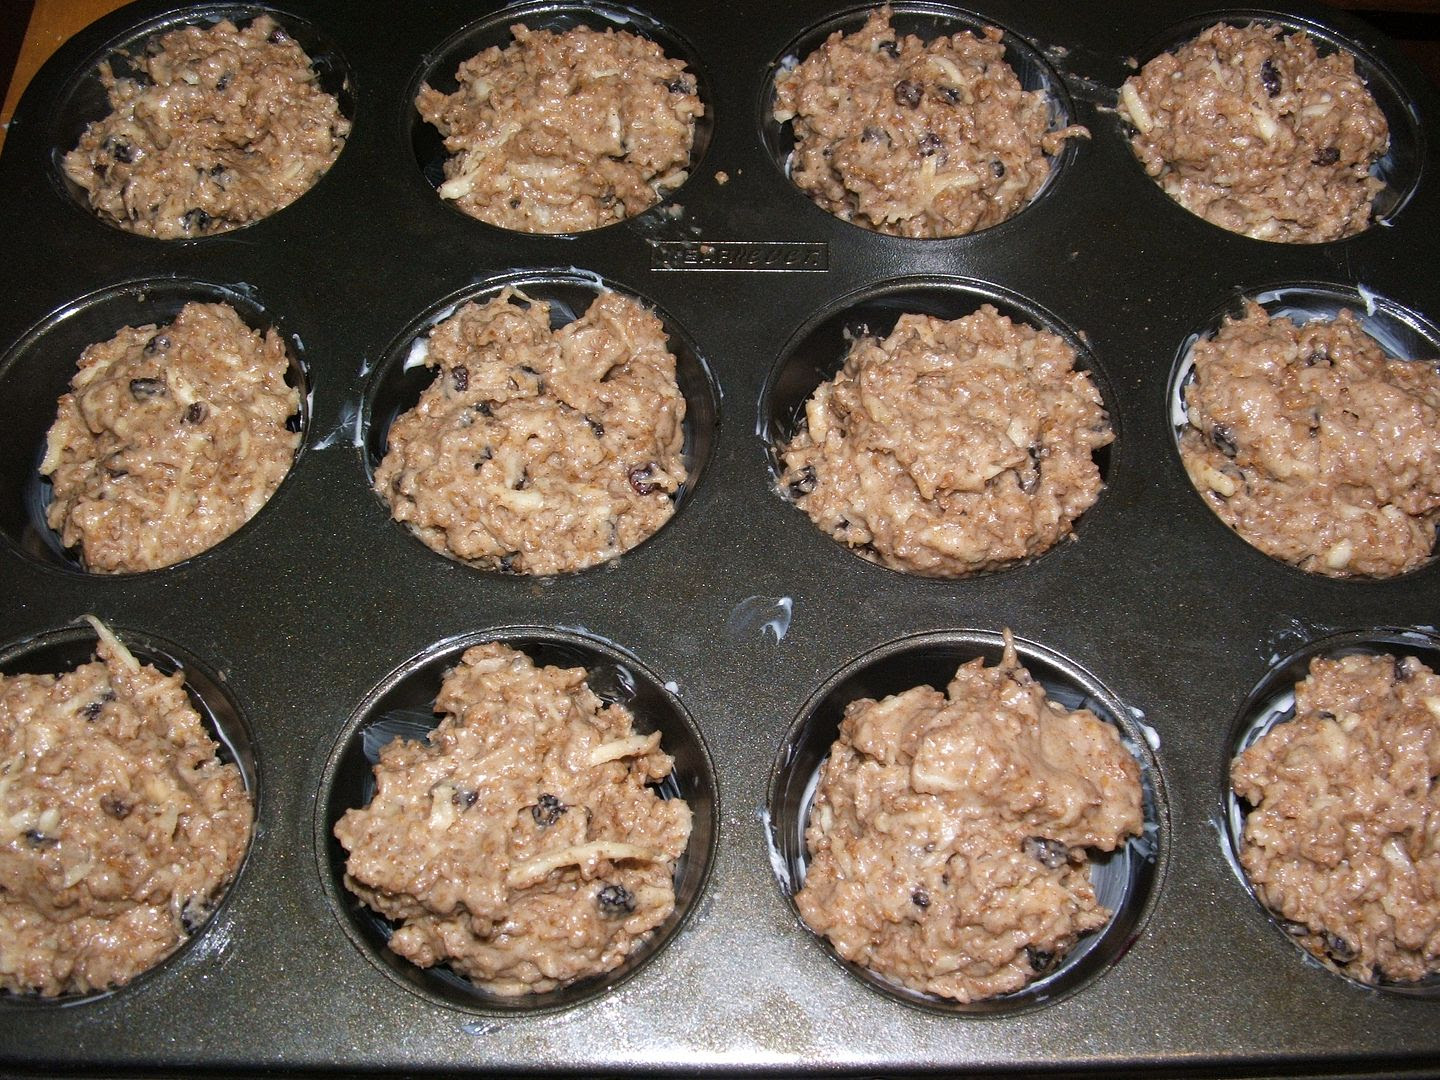 Spice Parsnip Bran Muffins by Angie Ouellette-Tower for godsgrowinggarden.com photo 009_zps27023041.jpg